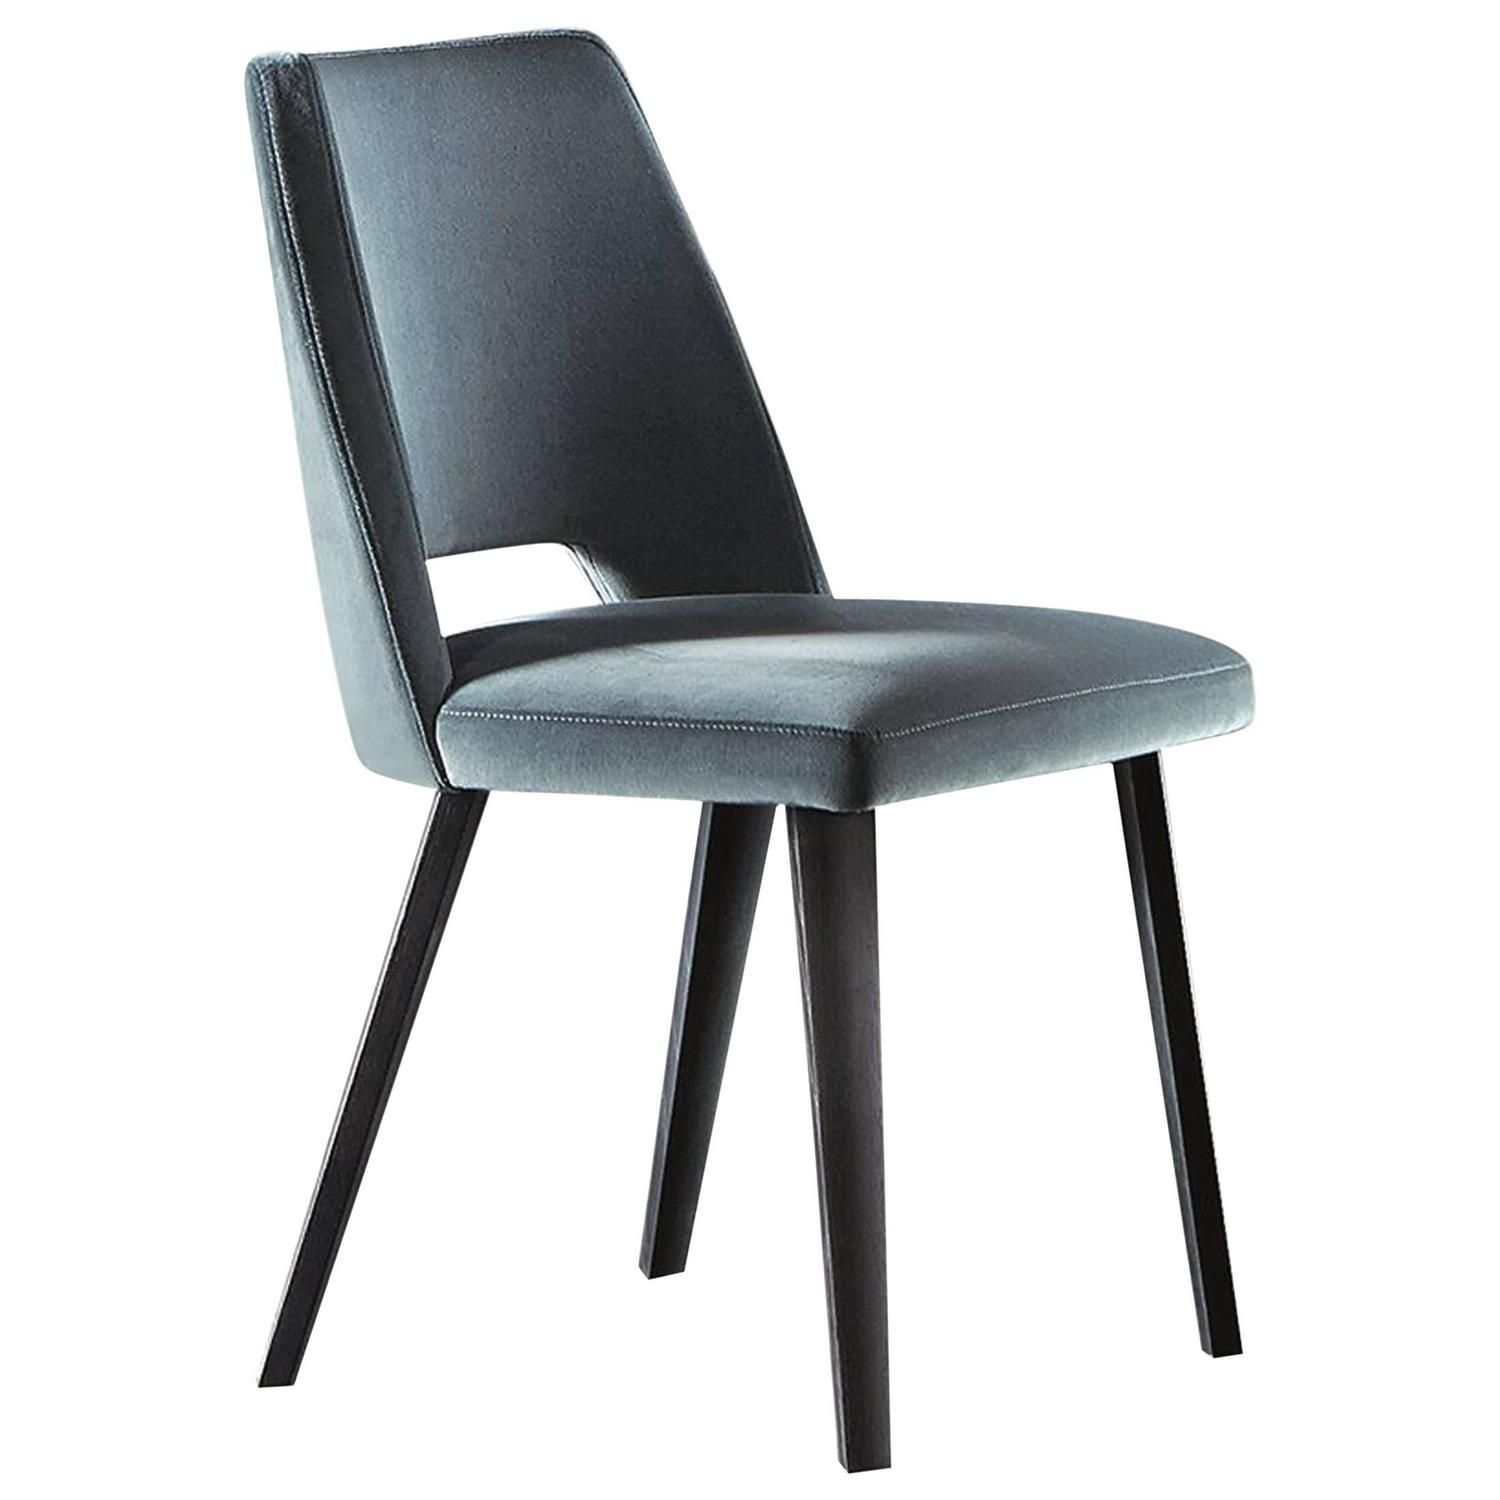 Thea Dining Chair With Upholstered Seat And Backrest And Wooden